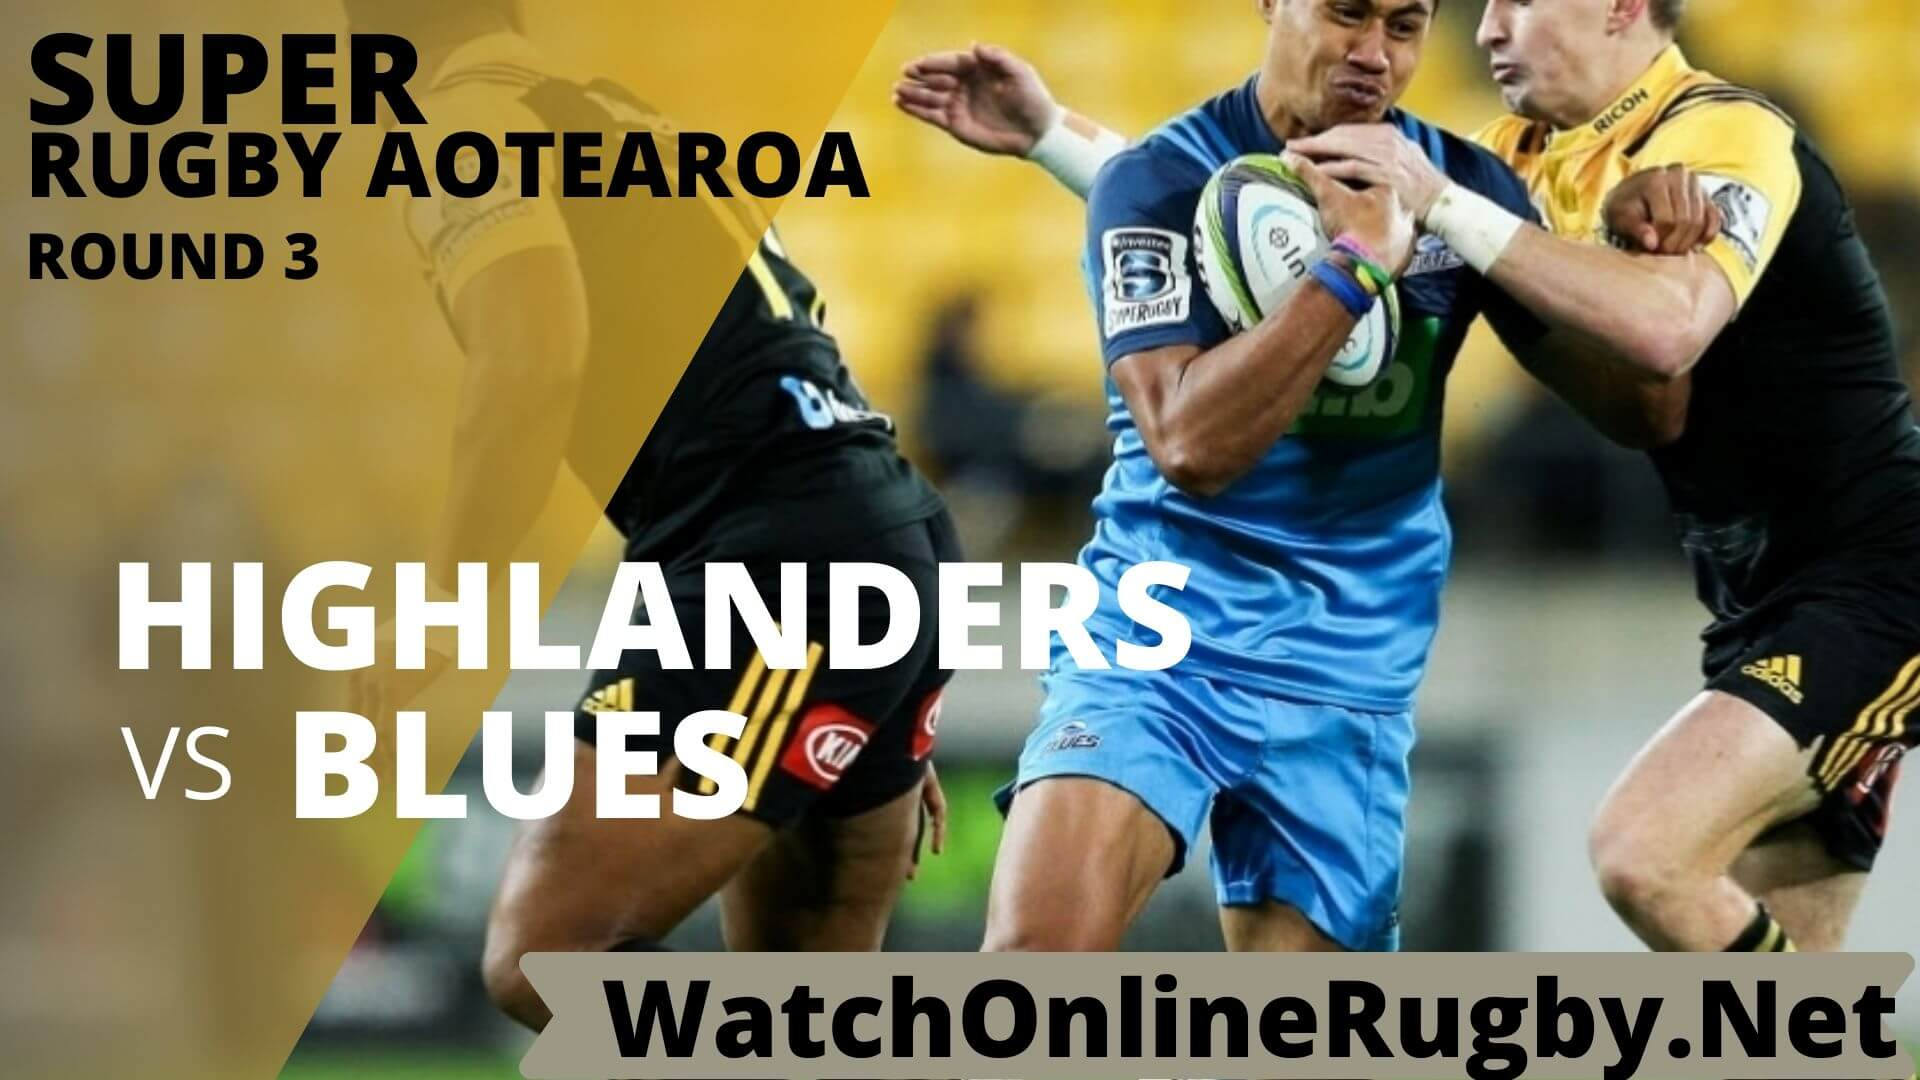 Highlanders Vs Blues Highlights Rd 3 Super Rugby Aotearao